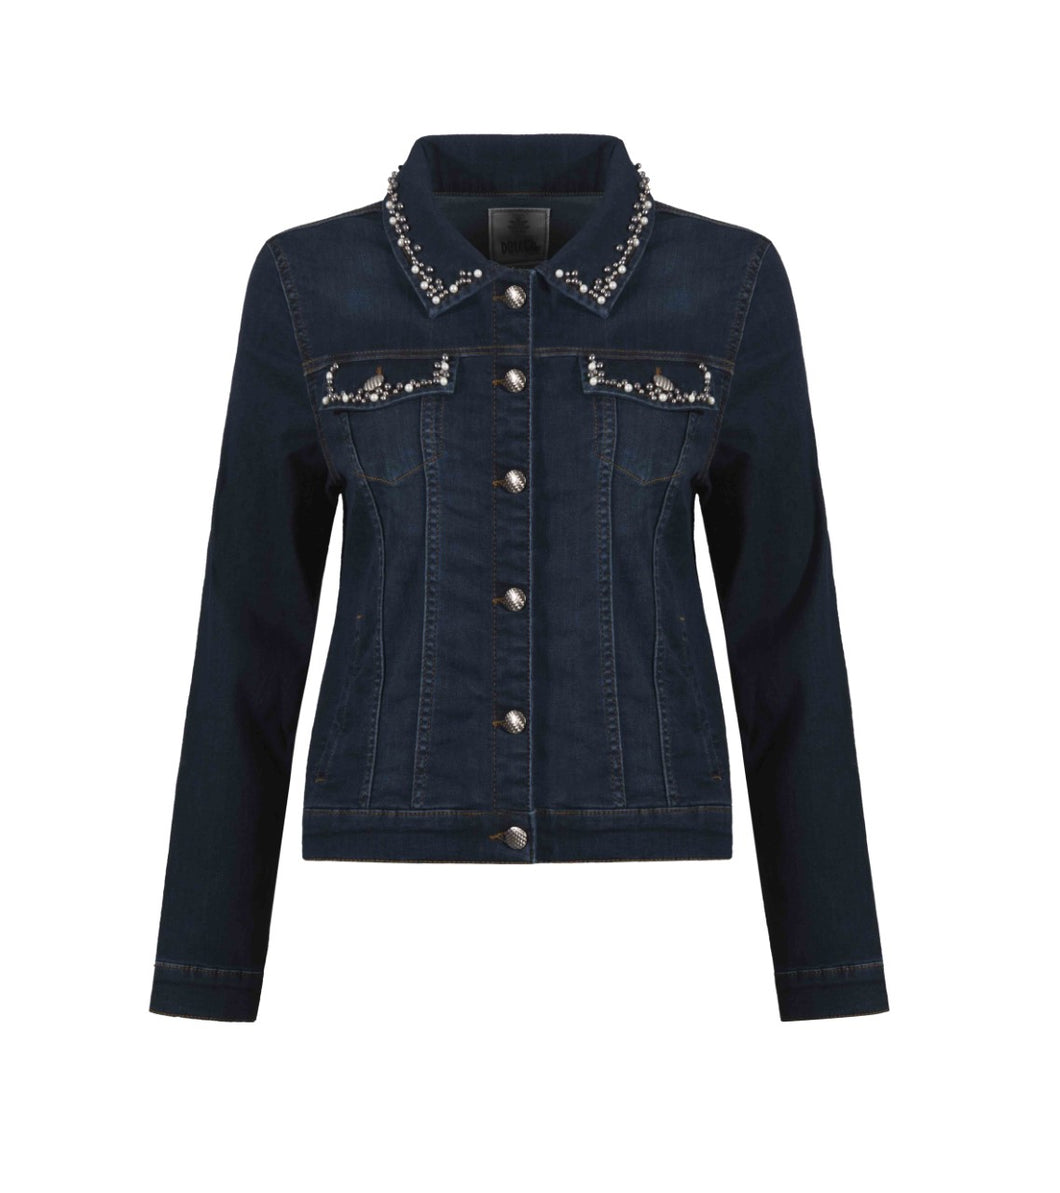 DOLCEZZA JEAN JACKET WITH EMBELLISHMENTS